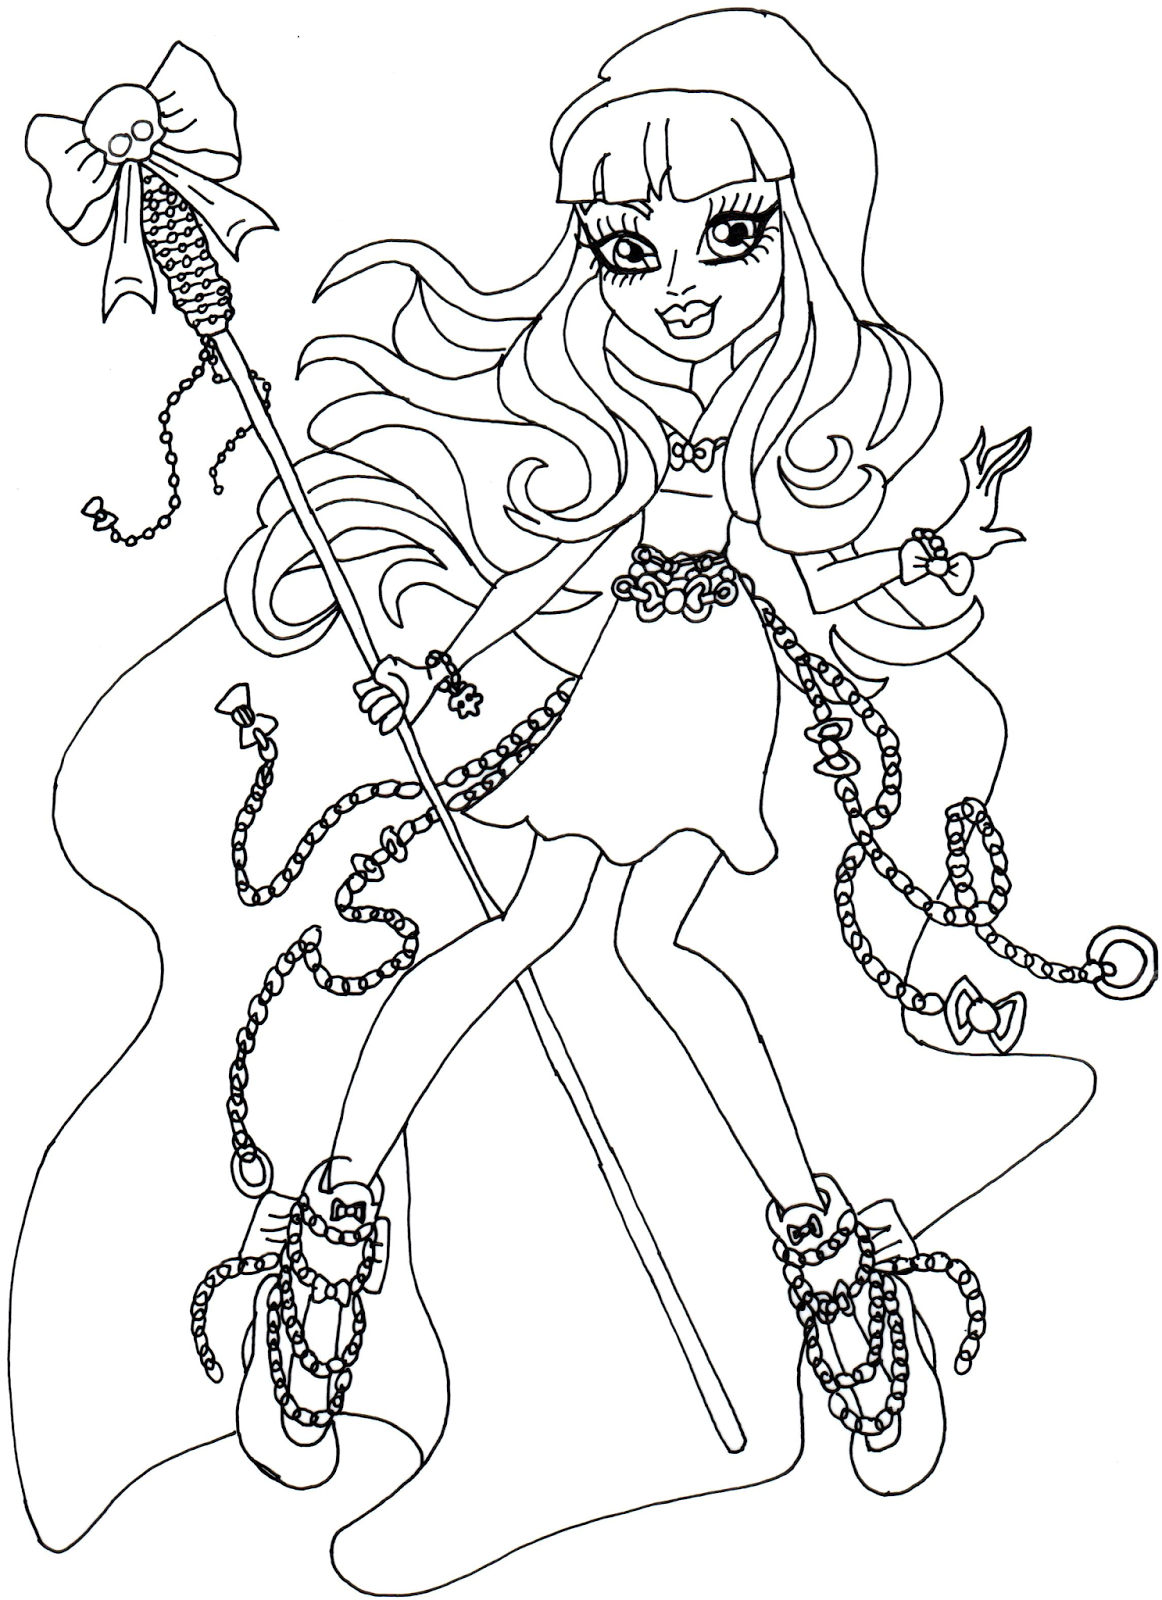 river styxx monster high coloring page png 1162 1600 monster